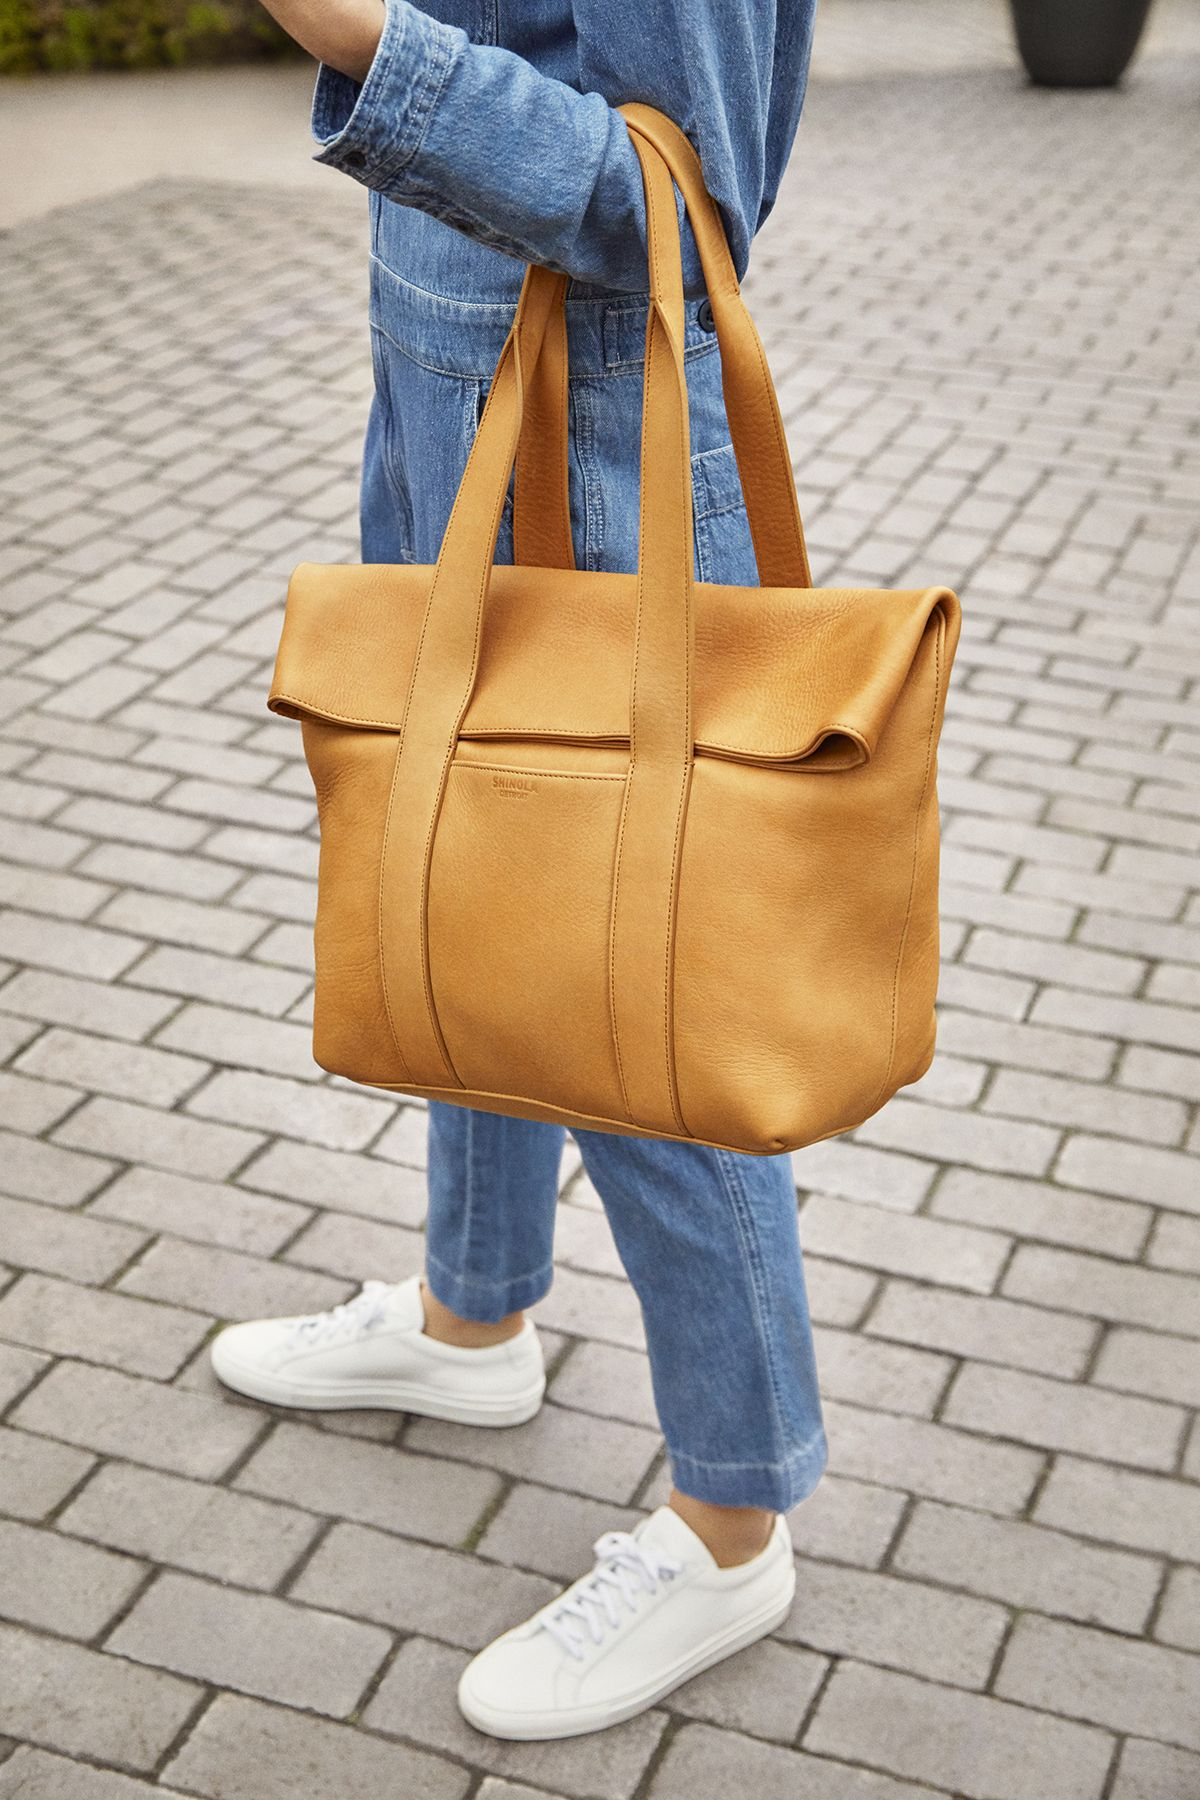 e45c2f038085 The Cass Tote has a timeless silhouette designed with covetable features and  handcrafted from remarkably soft